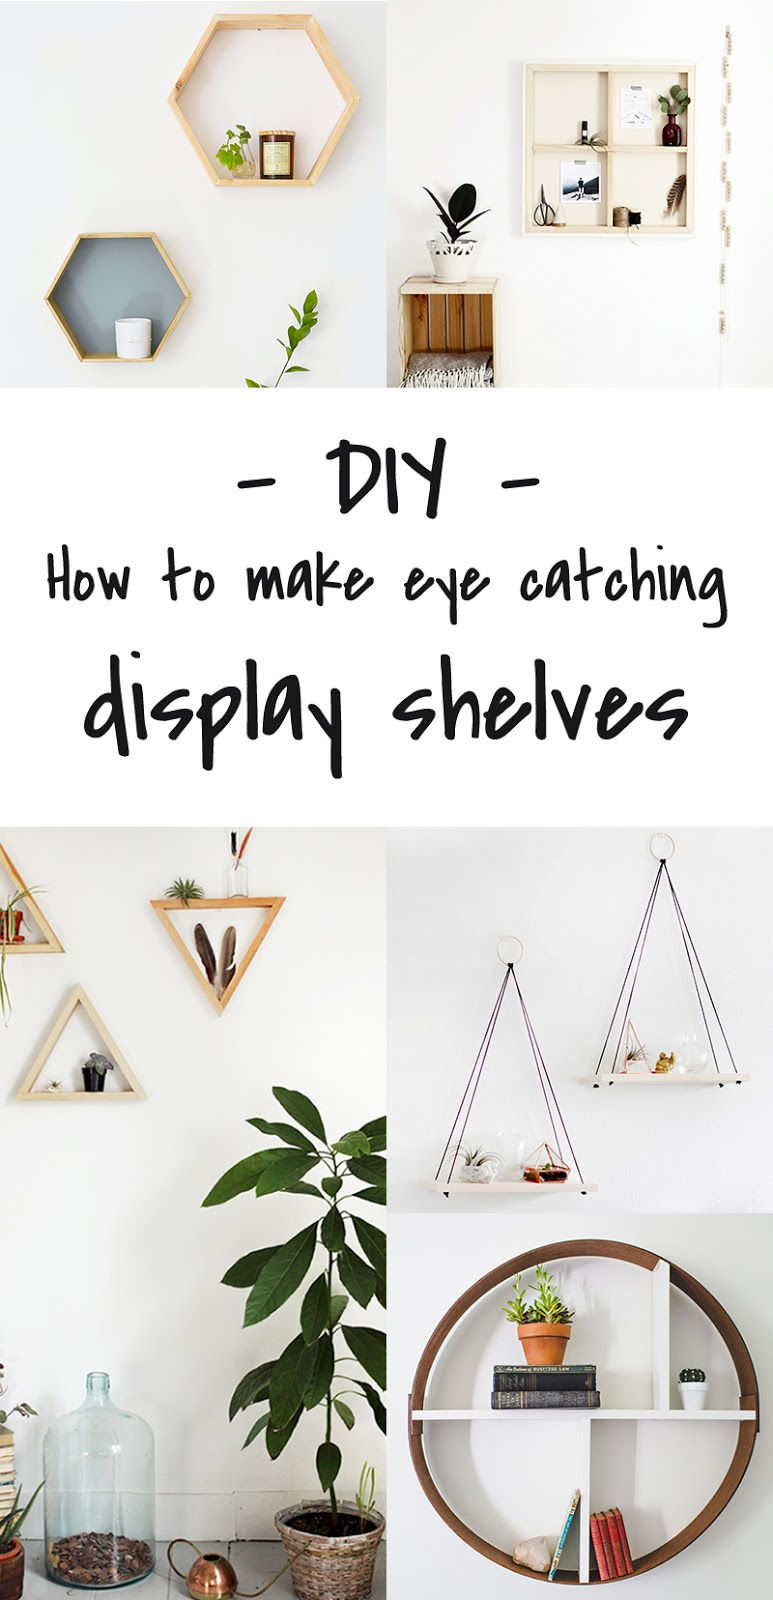 DIY to try # Display shelves